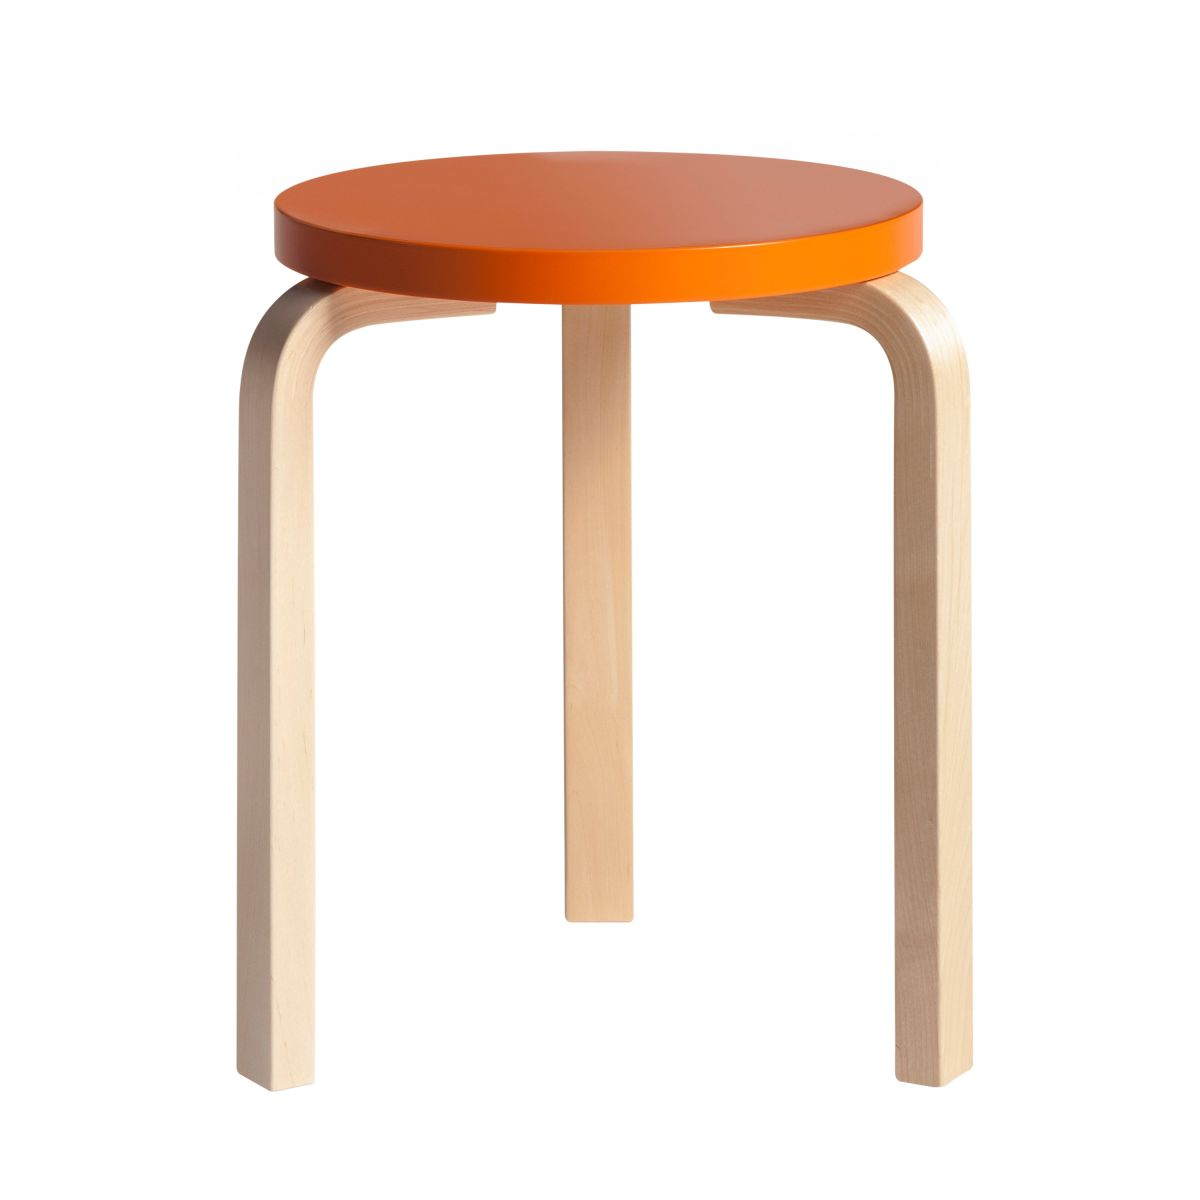 Stool-60-Clear-Lacquer-Orange-Top